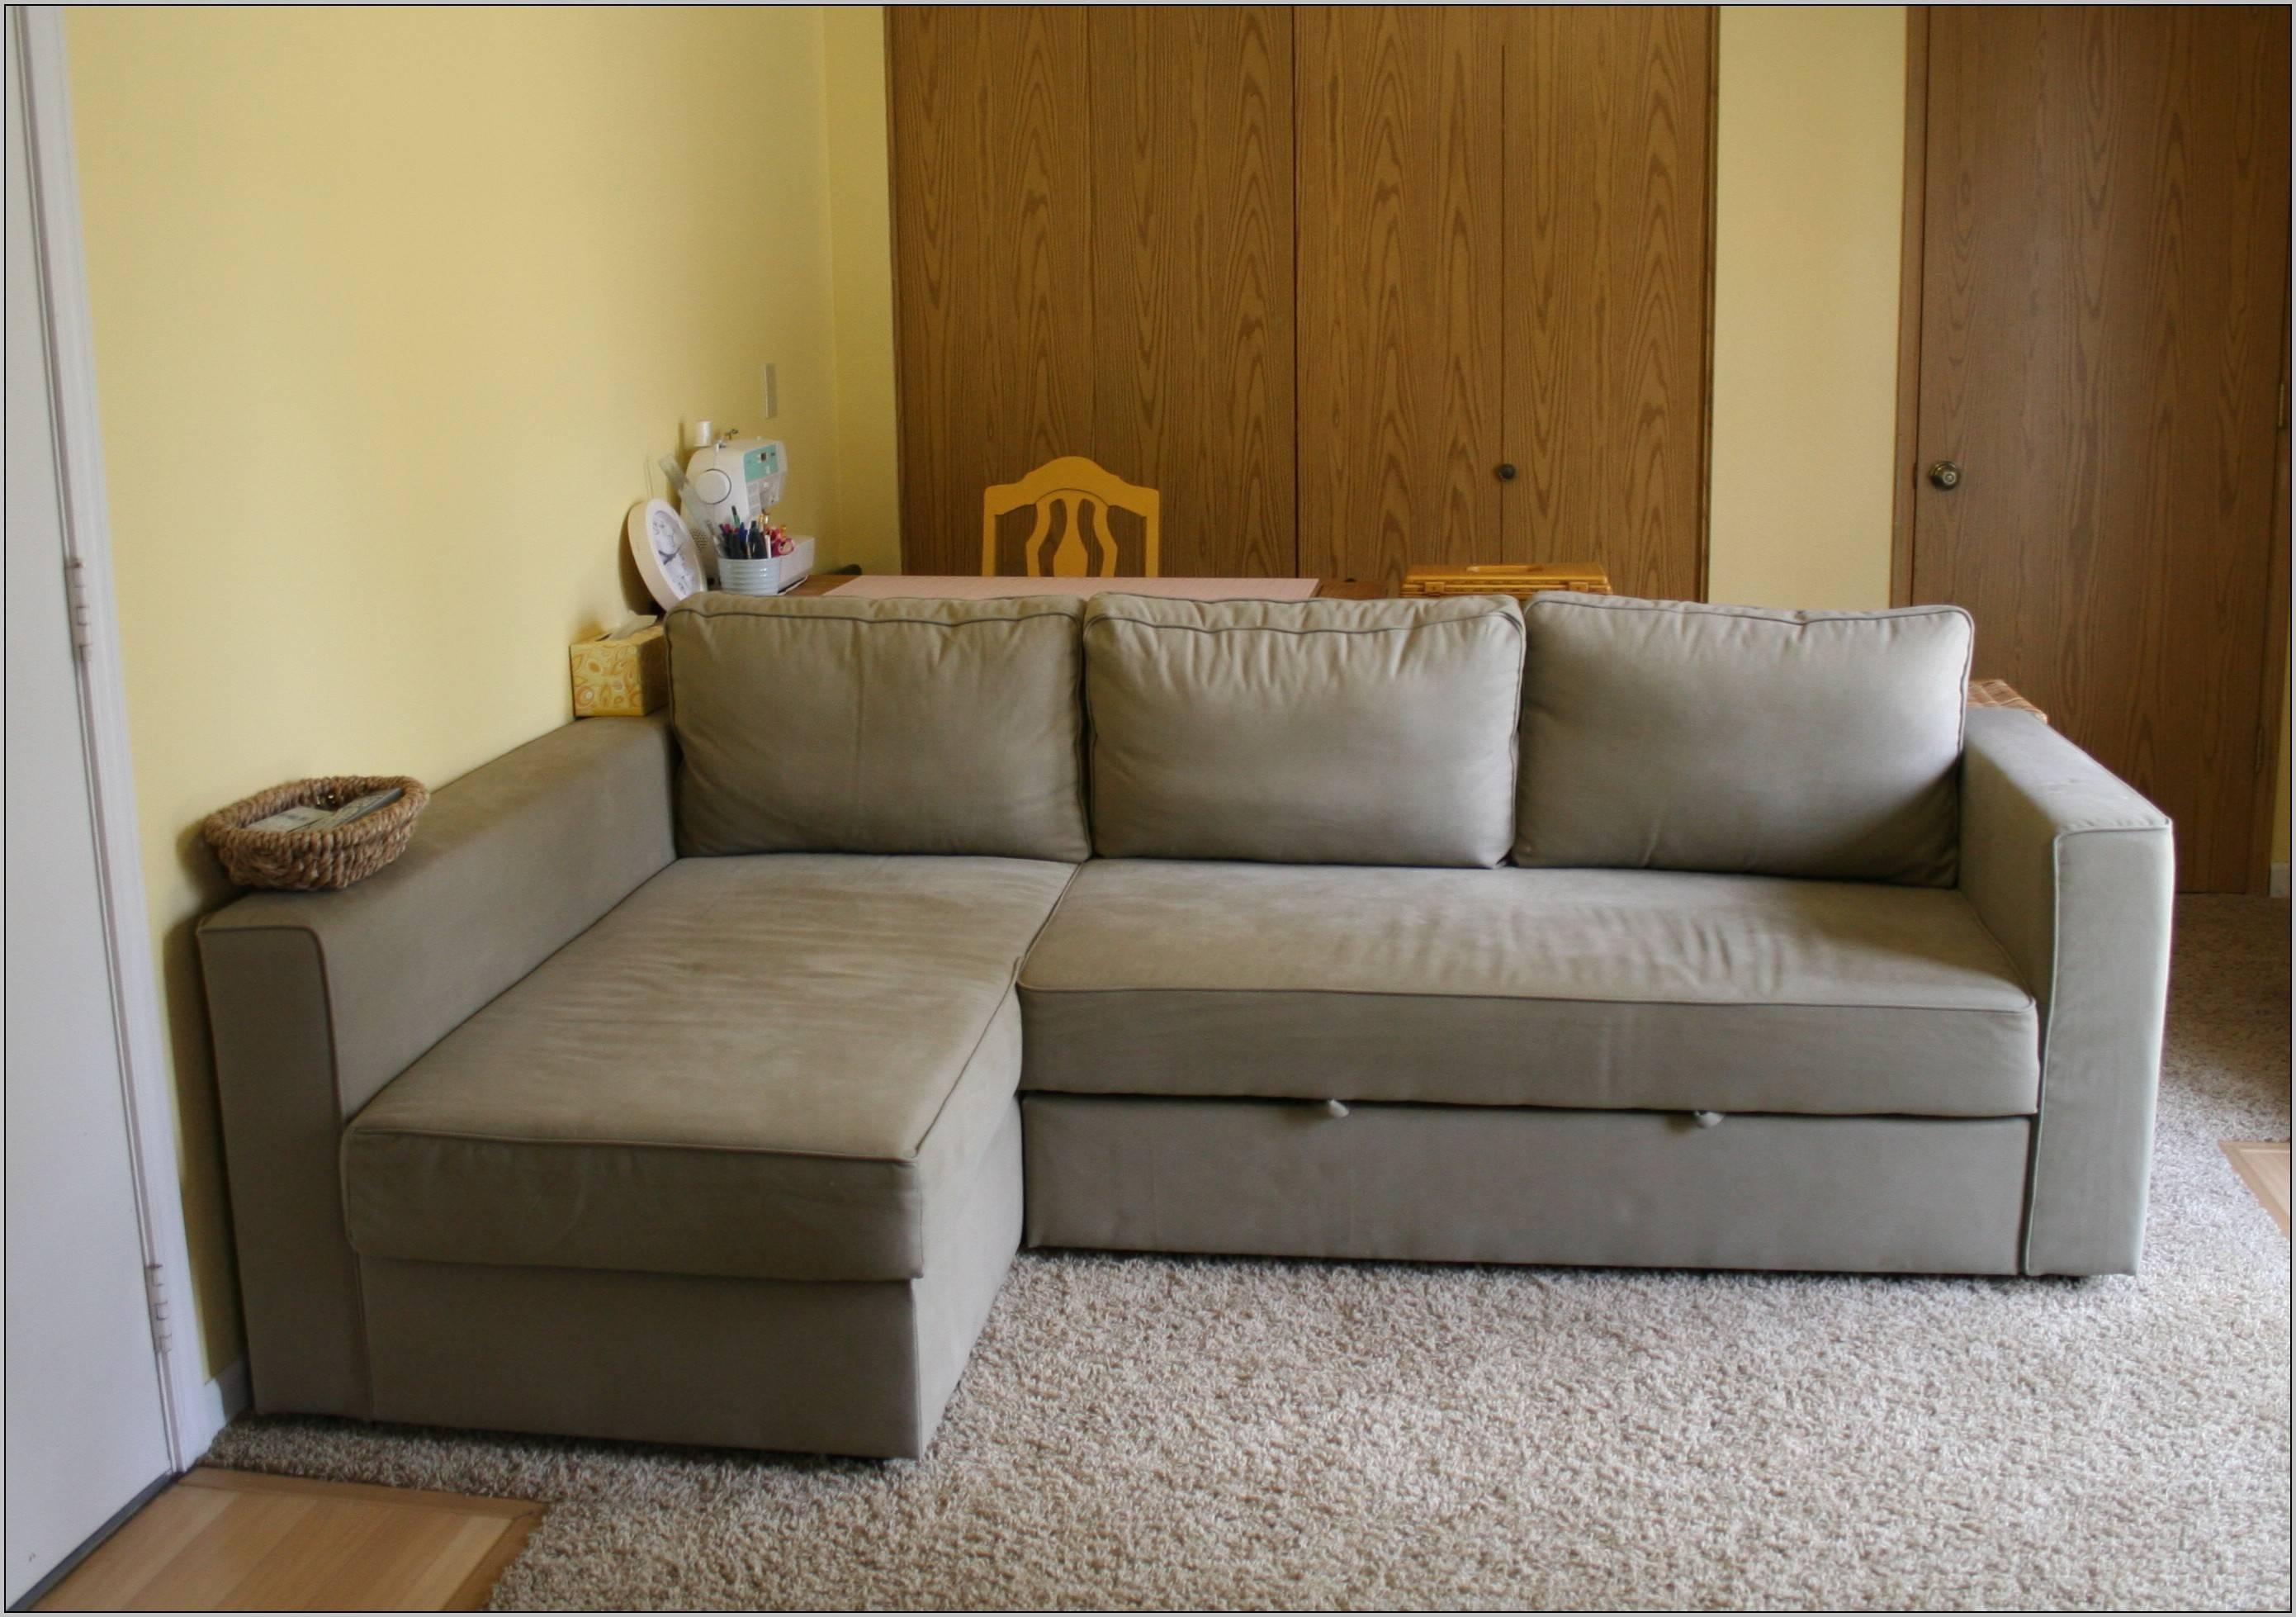 Corner Sleeper Sofa Ikea | Tehranmix Decoration With Regard To Sleeper Sofa Sectional Ikea (View 3 of 25)